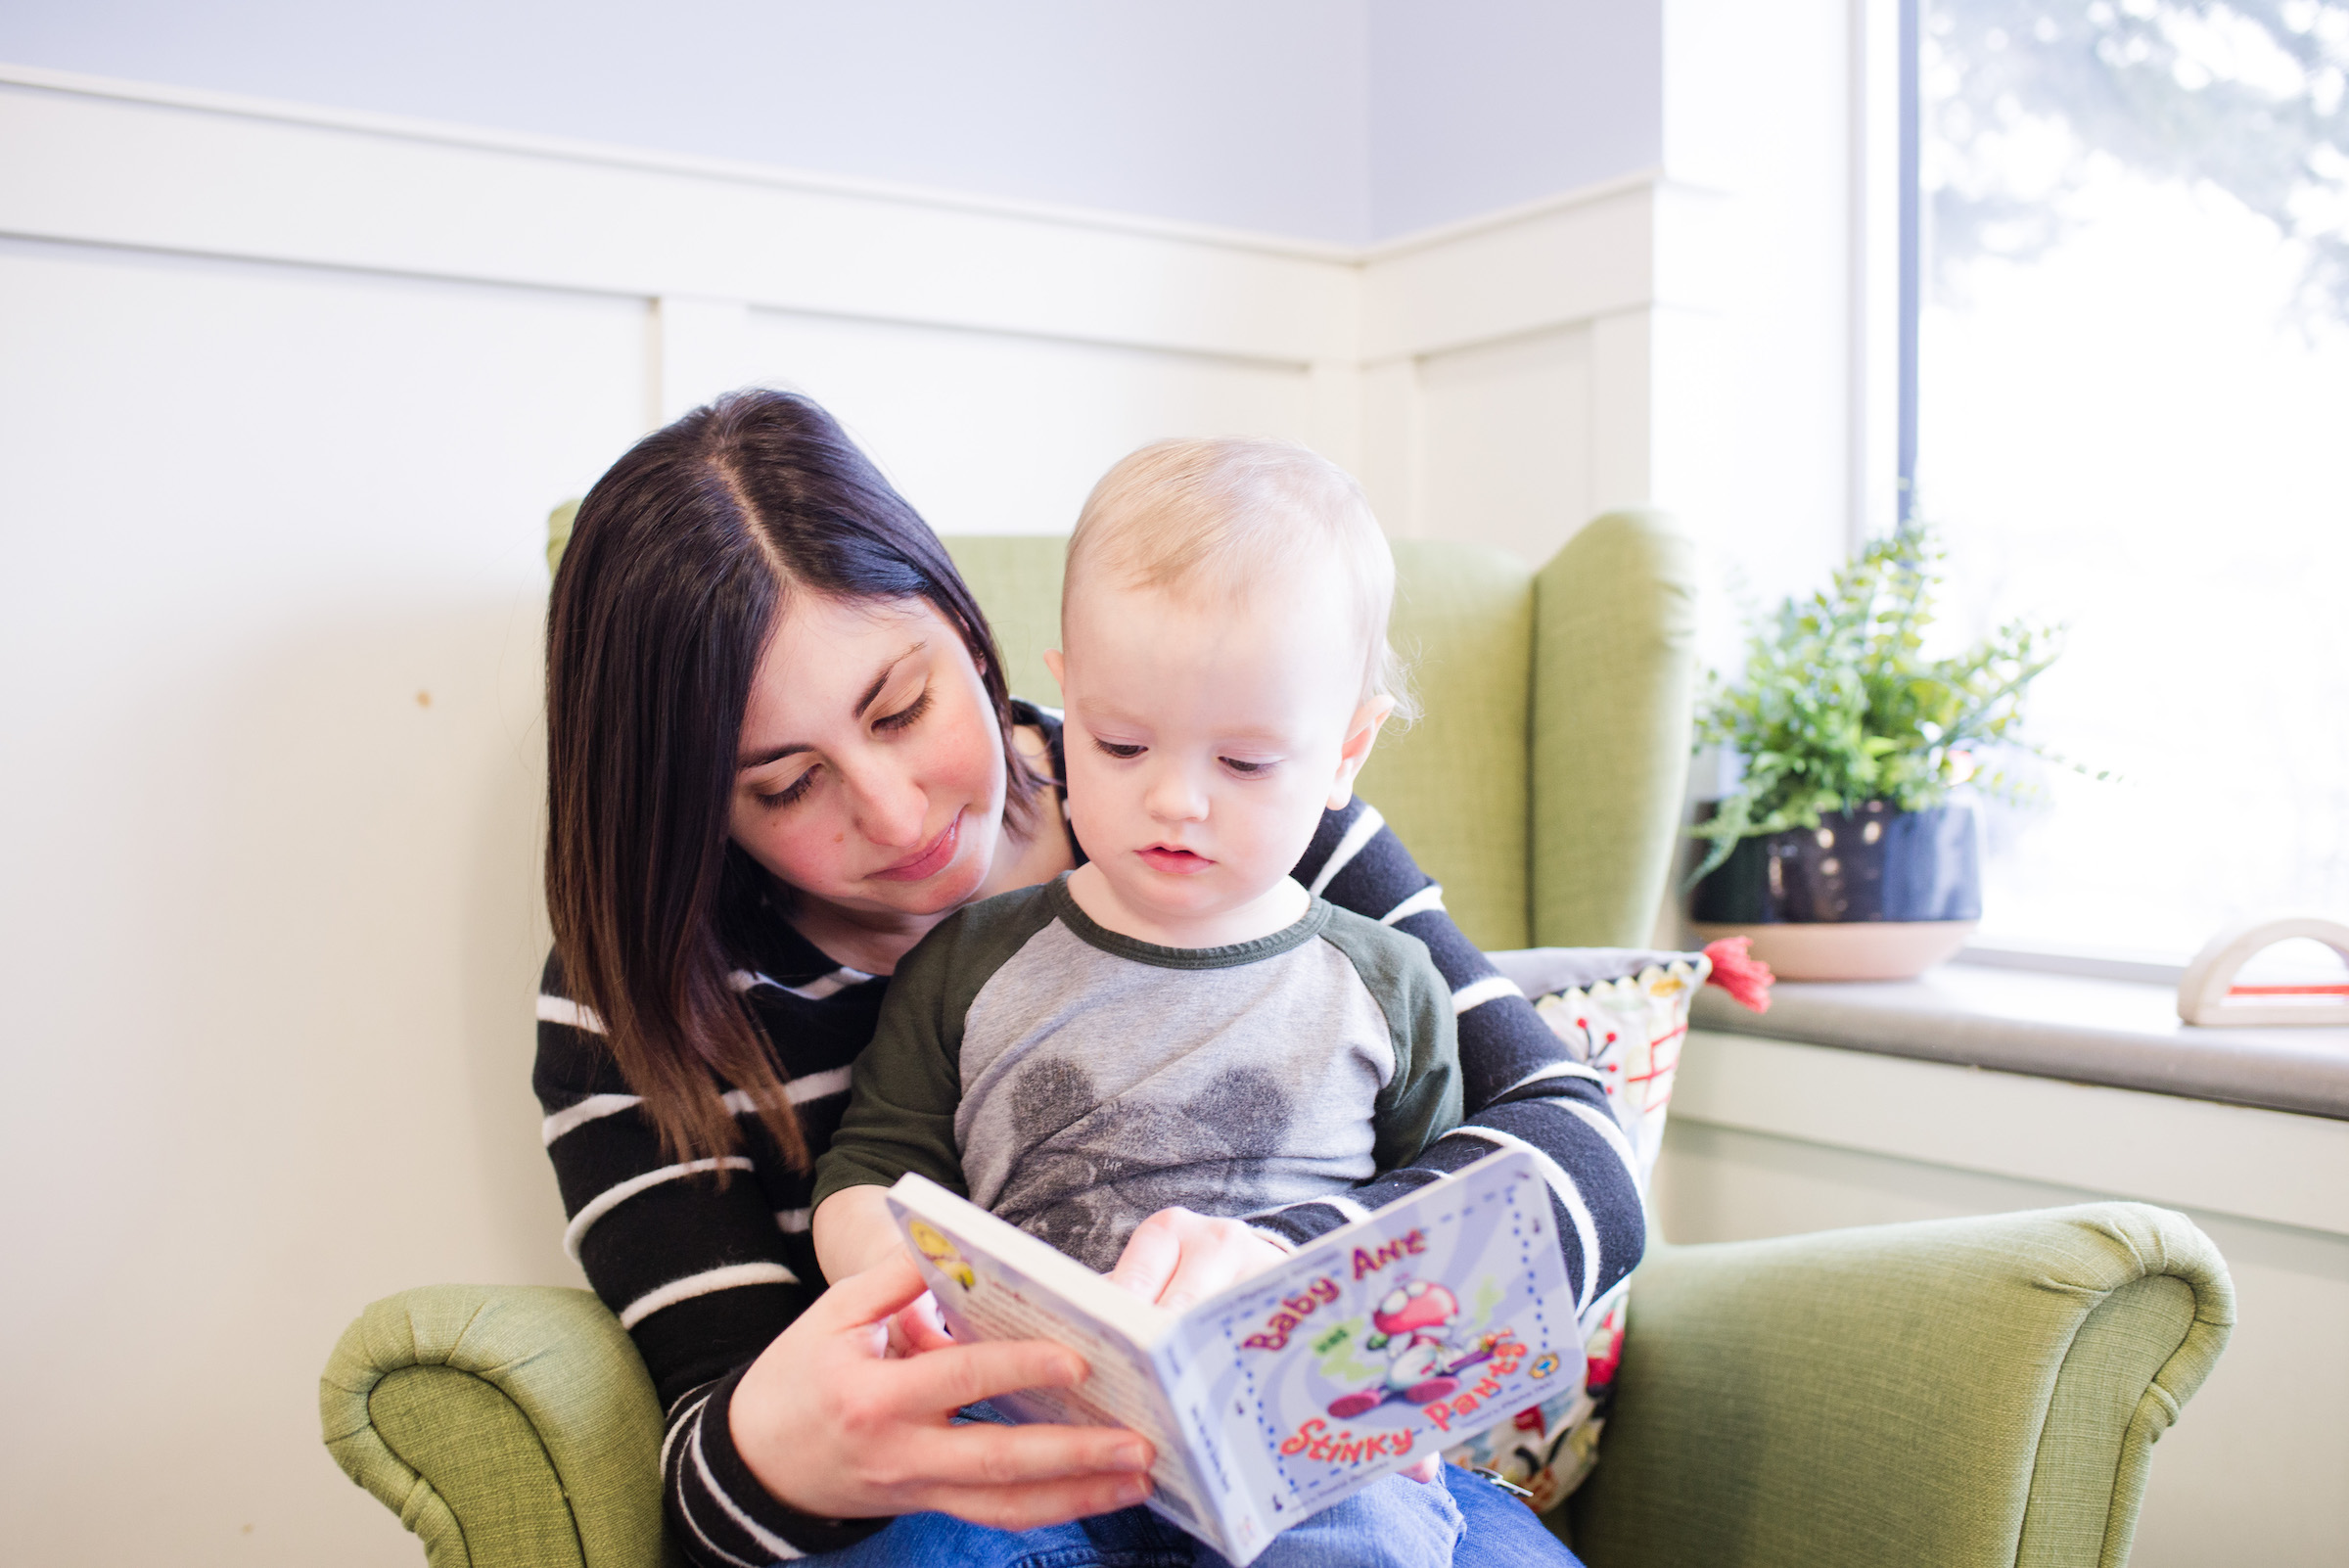 Caregiver reads to baby in Brightling infant room